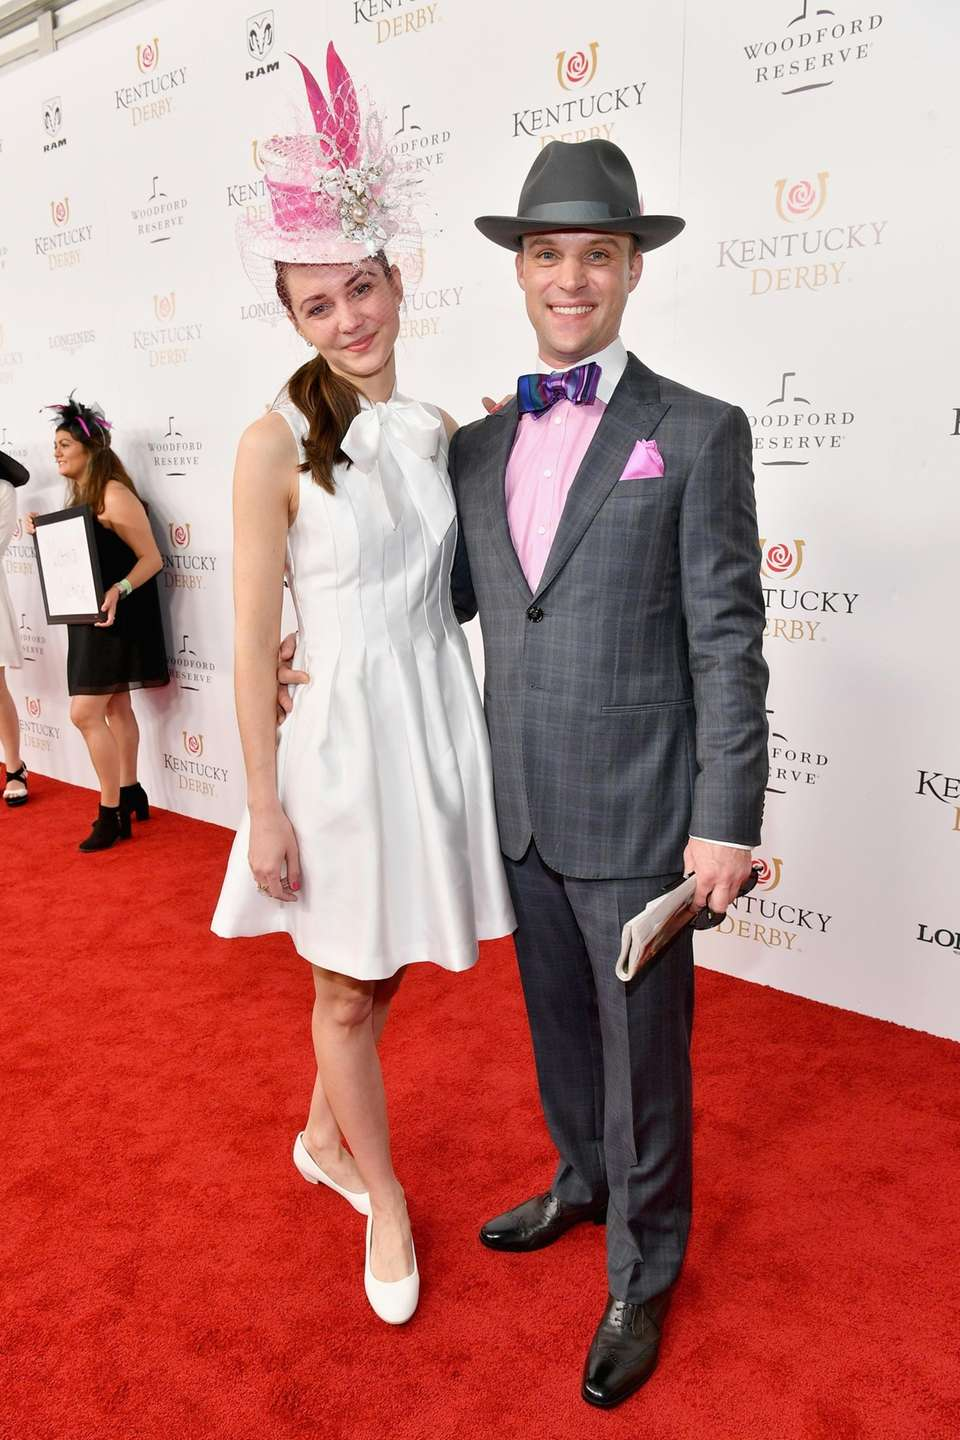 Actor Jesse Spencer attend Kentucky Derby 144 on